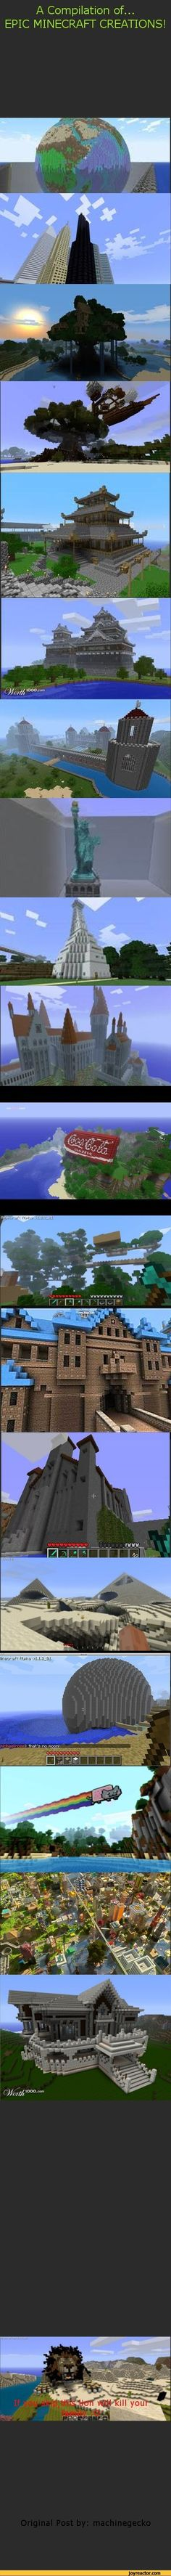 A Compilation of...EPIC MINECRAFT CREATIONS!Original Post by: machinegecko / funny pictures / funny pictures best jokes: comics images video humor gif animation - i lold